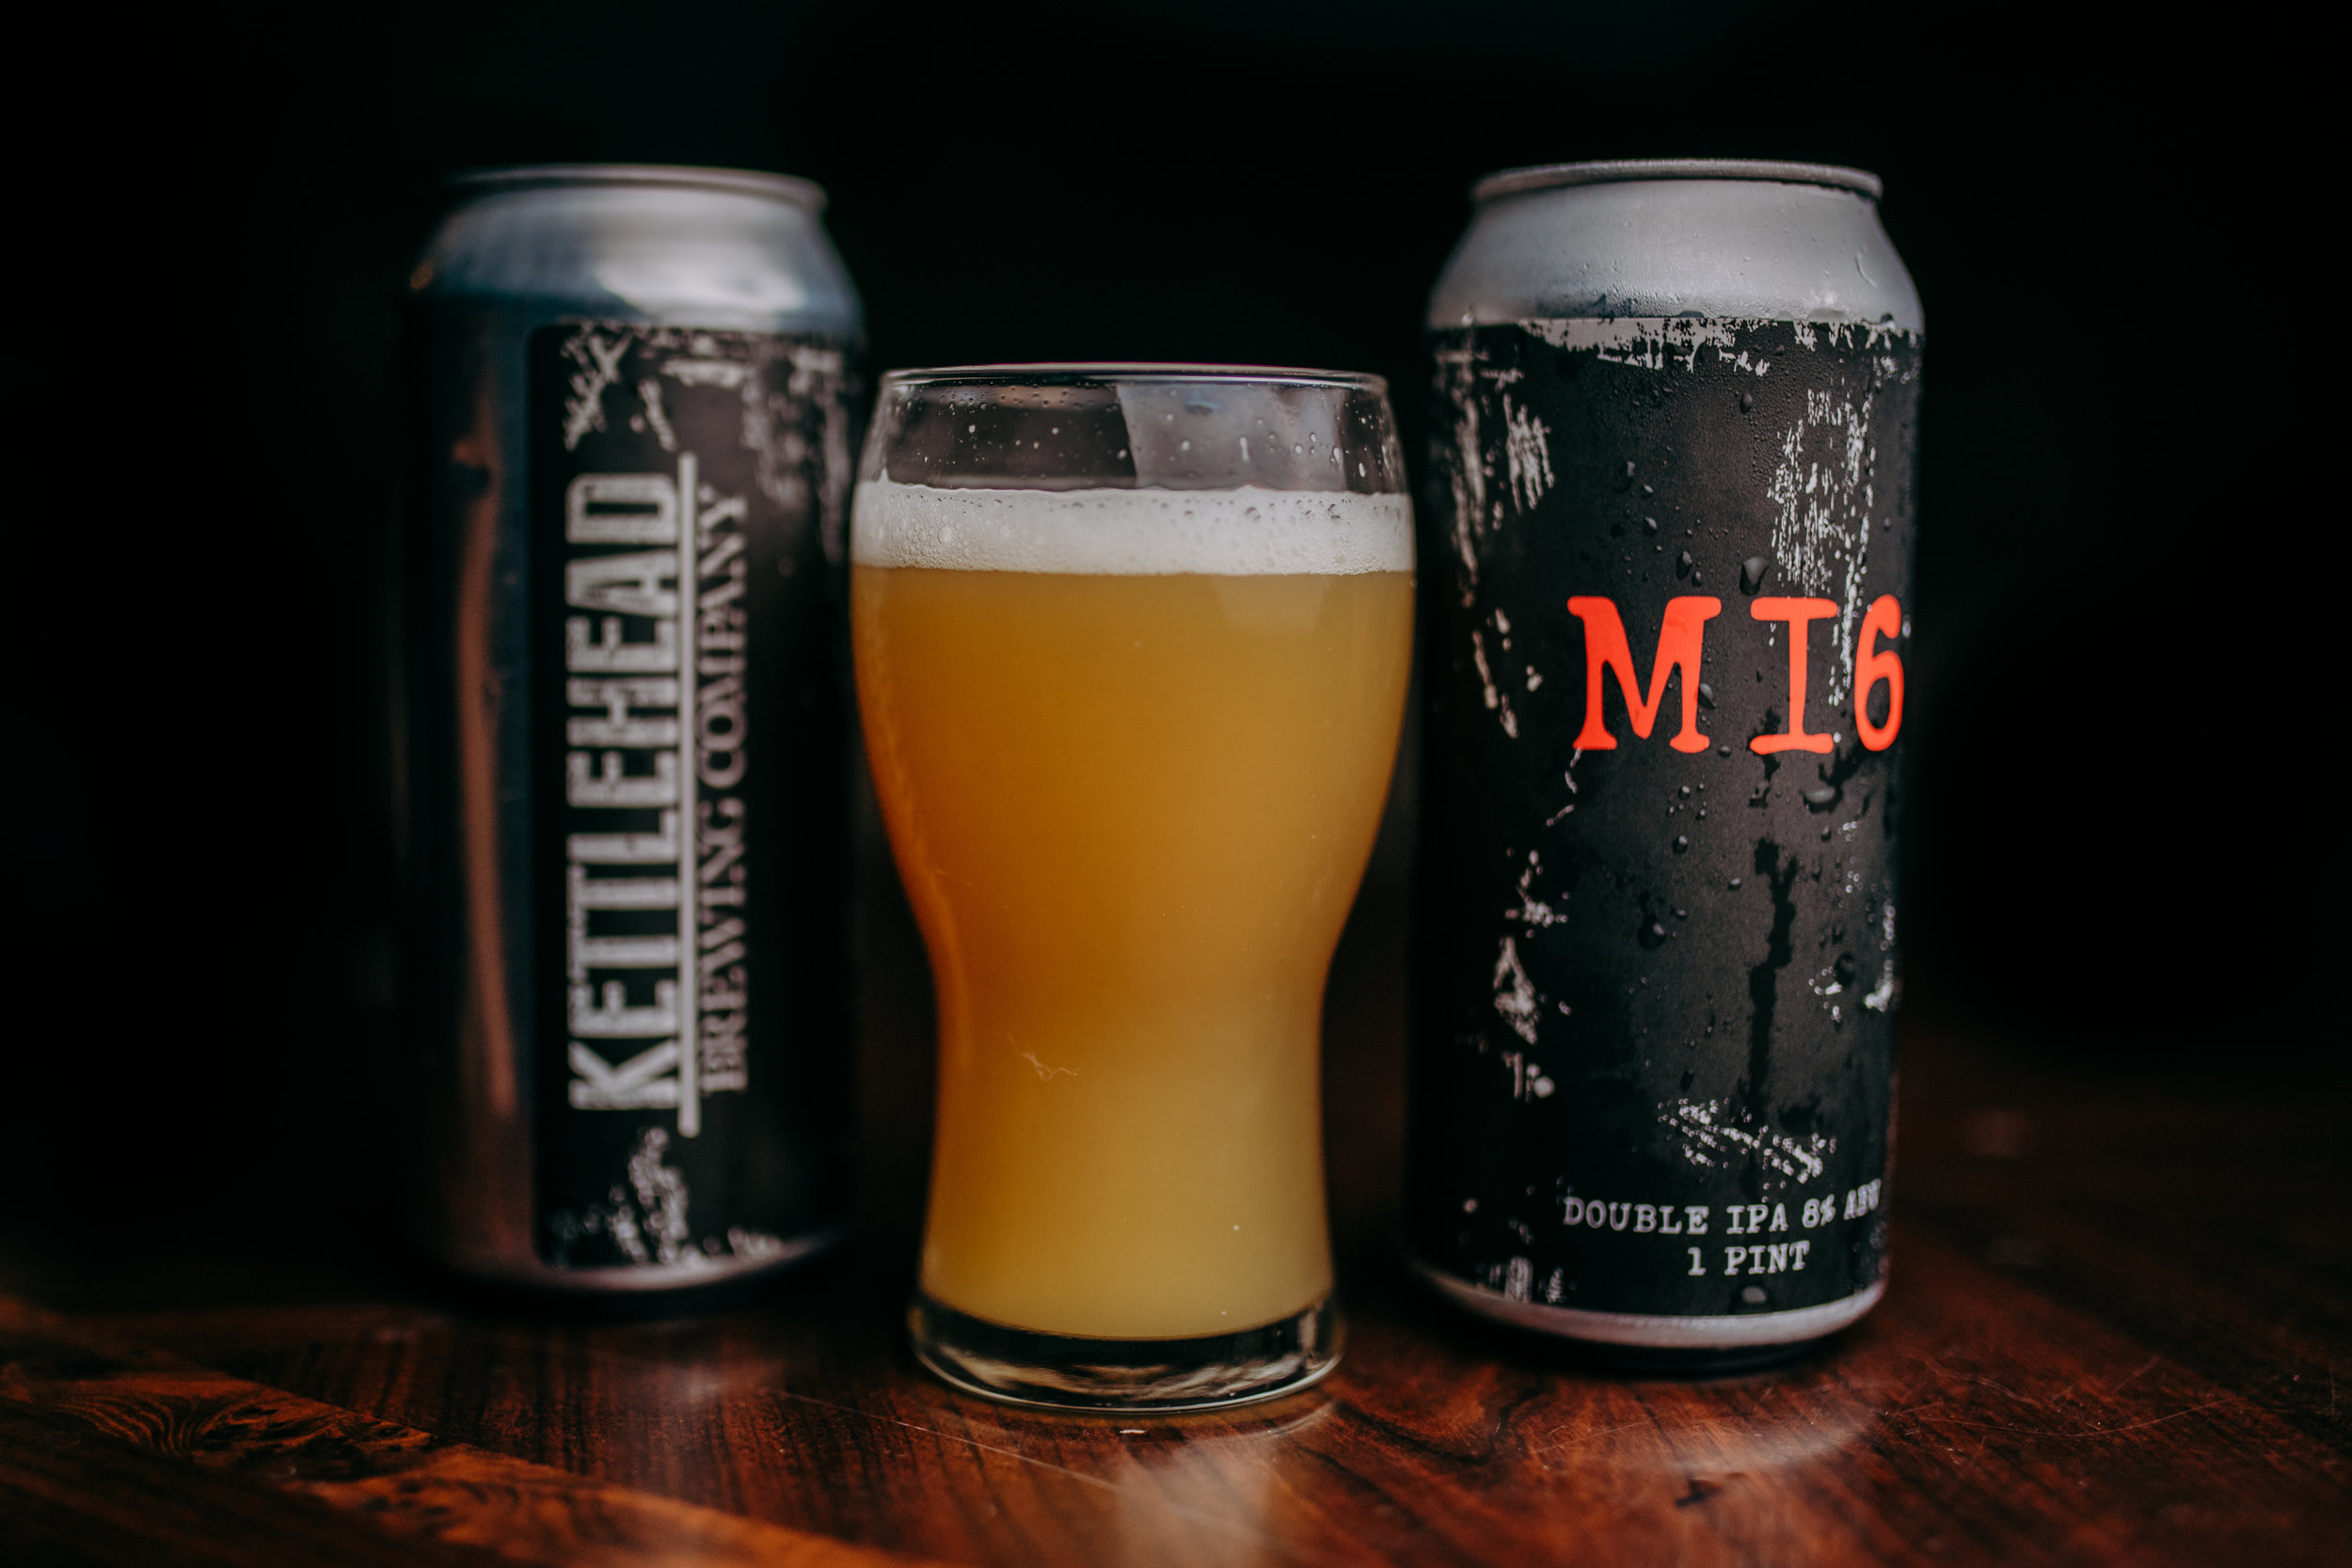 Mi6, DIPA 8% - The use of hop extract oil and multilabel dry hop additions with Mosaic and Citra lupulin powder leaves double IPA dripping with smooth tropical hoppiness.